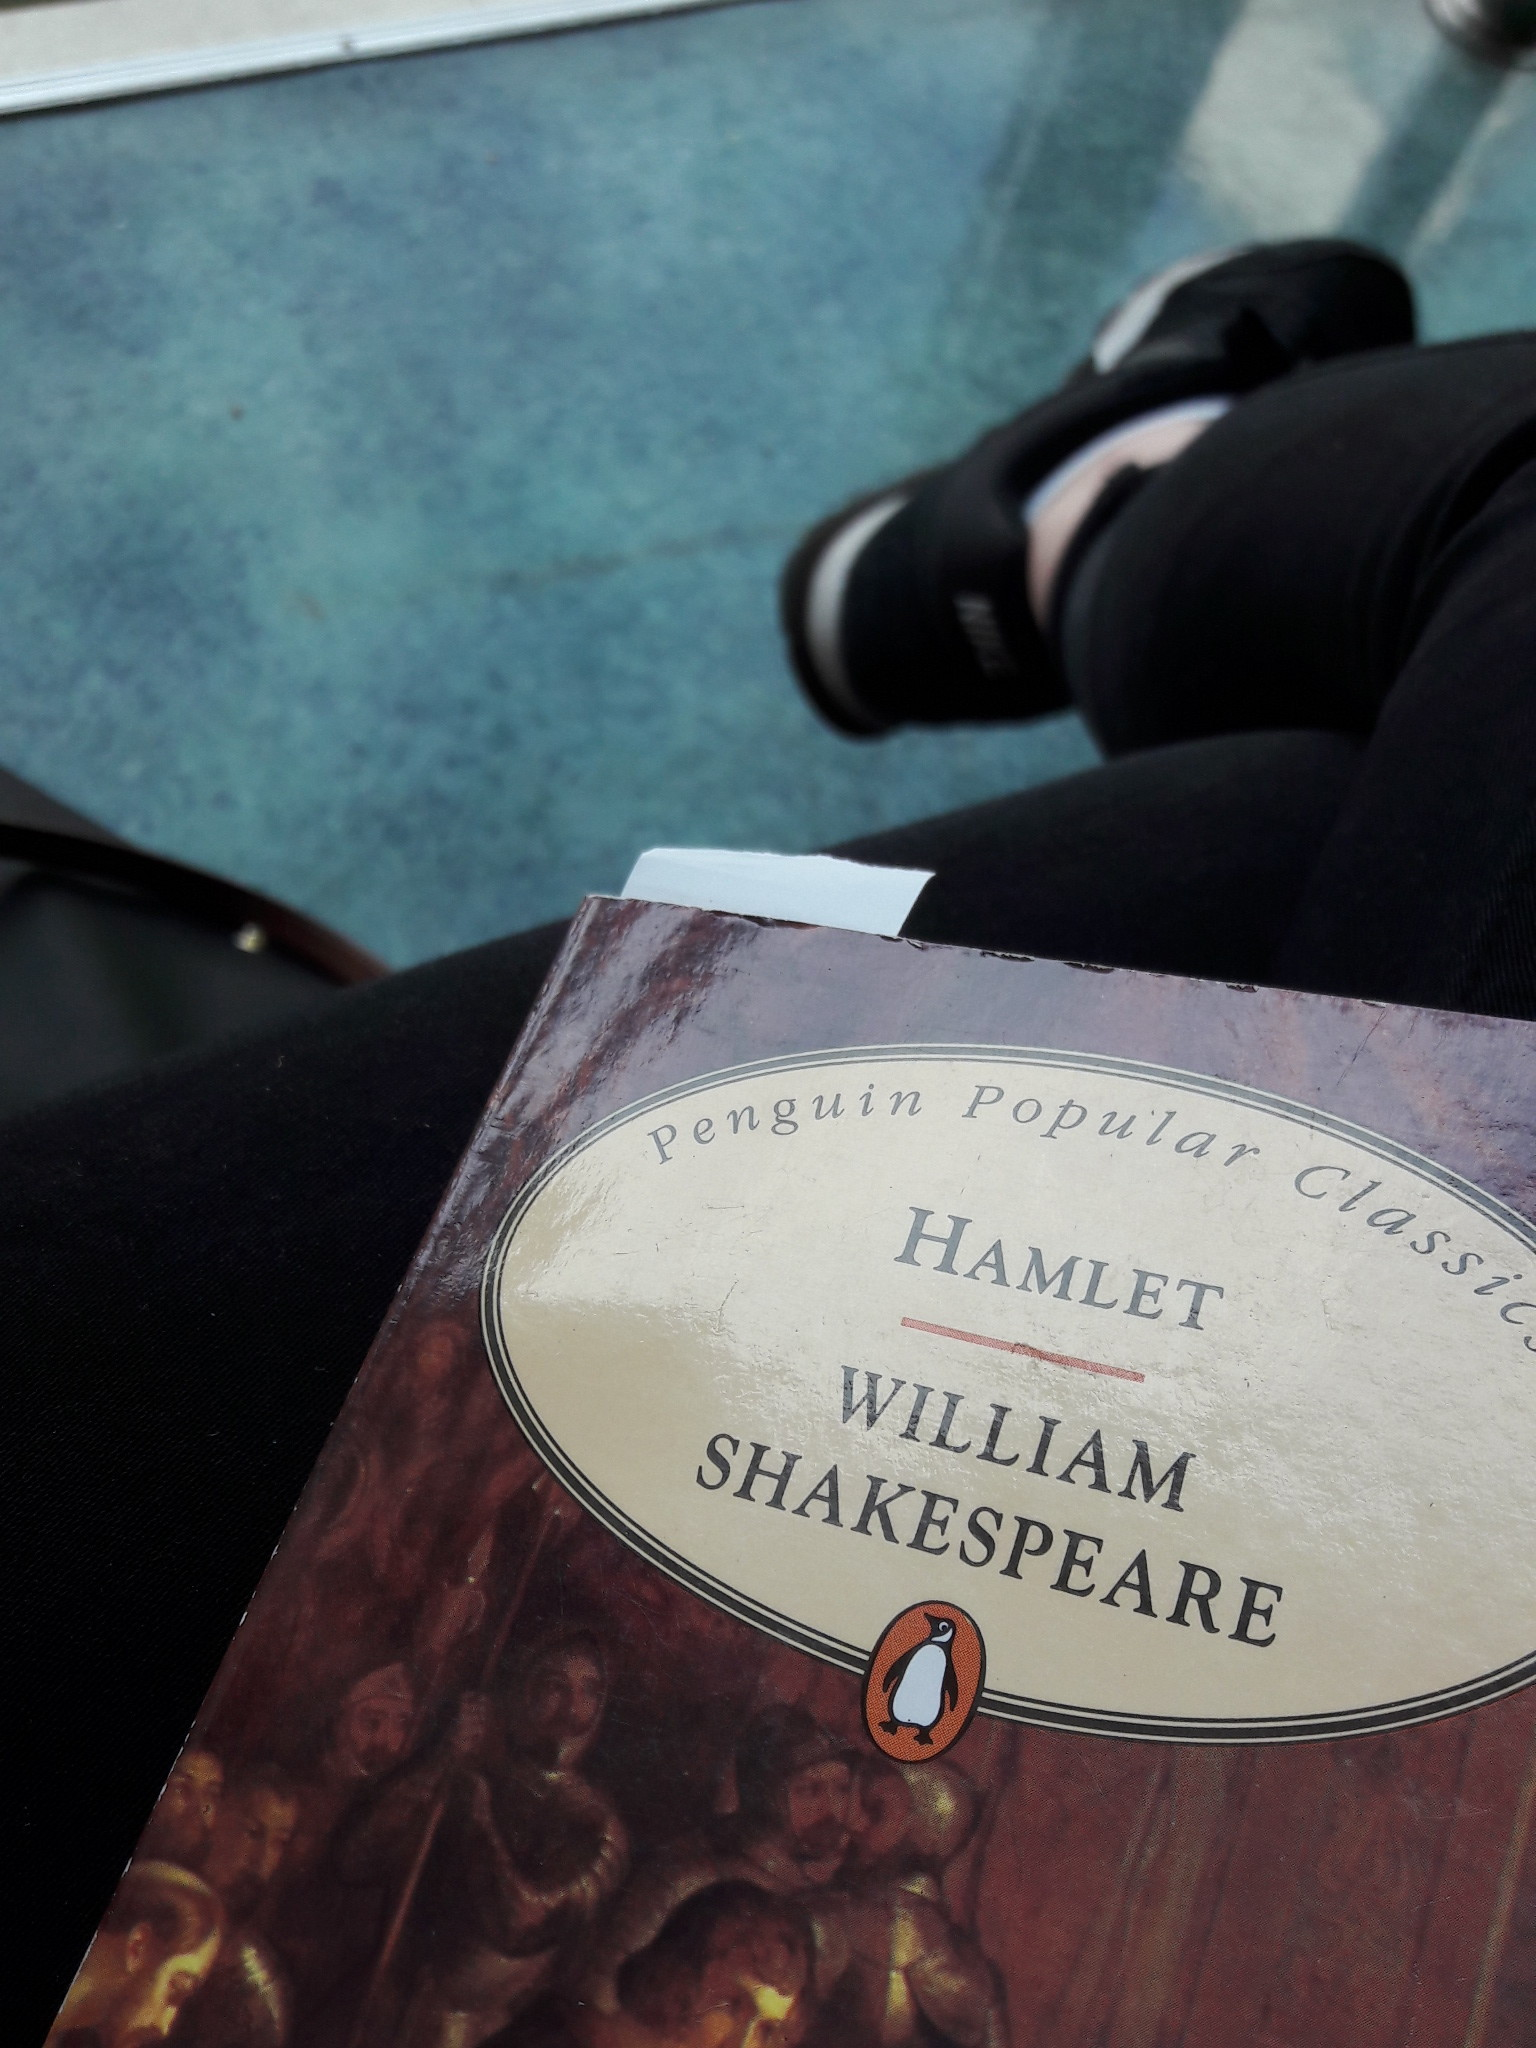 Reading Shakespeare in the cafeteria